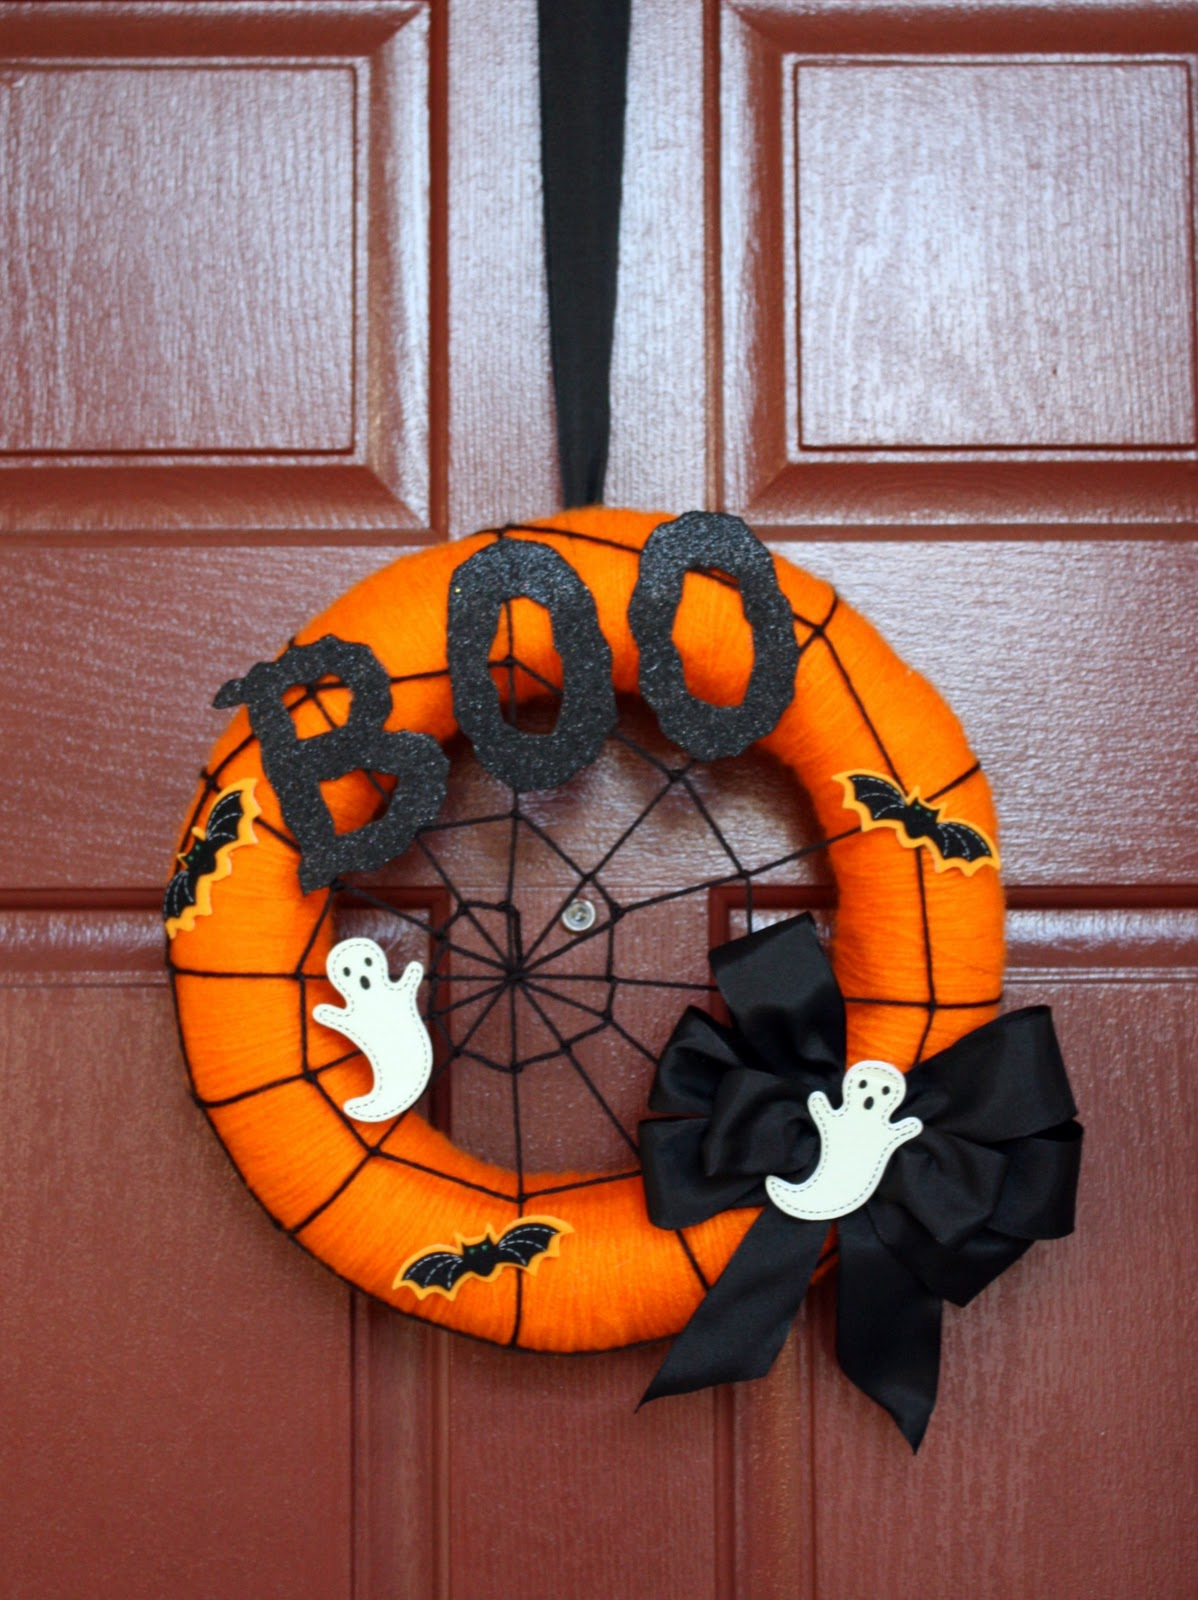 10 Unique Halloween Wreaths | Real Simple